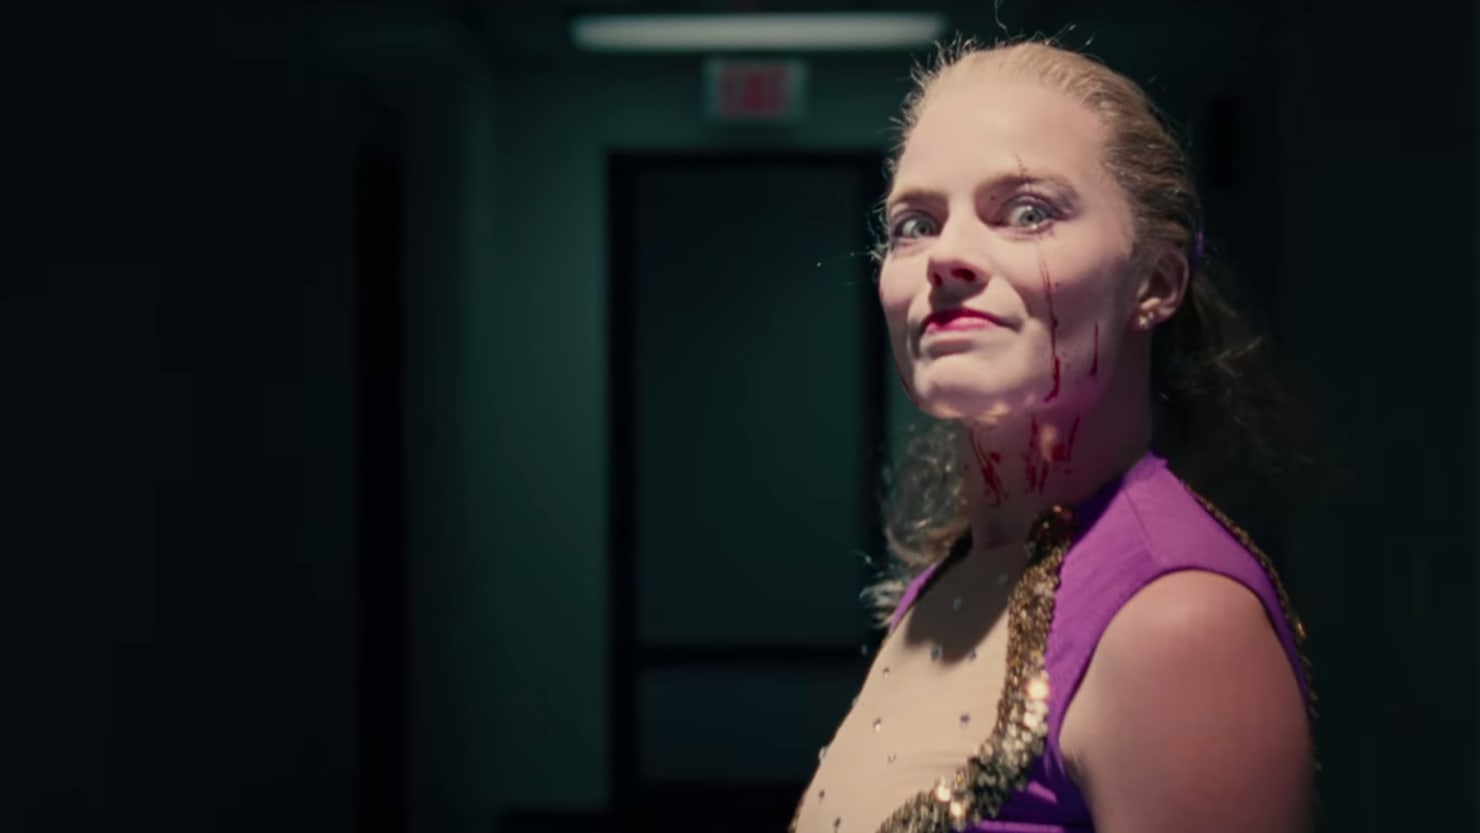 The Buzzy Biopic Features Aussie Stunner Robbie As Figure Skater Tonya Harding Exploring The Physical And Psychological Abuse She Suffered At The Hands Of